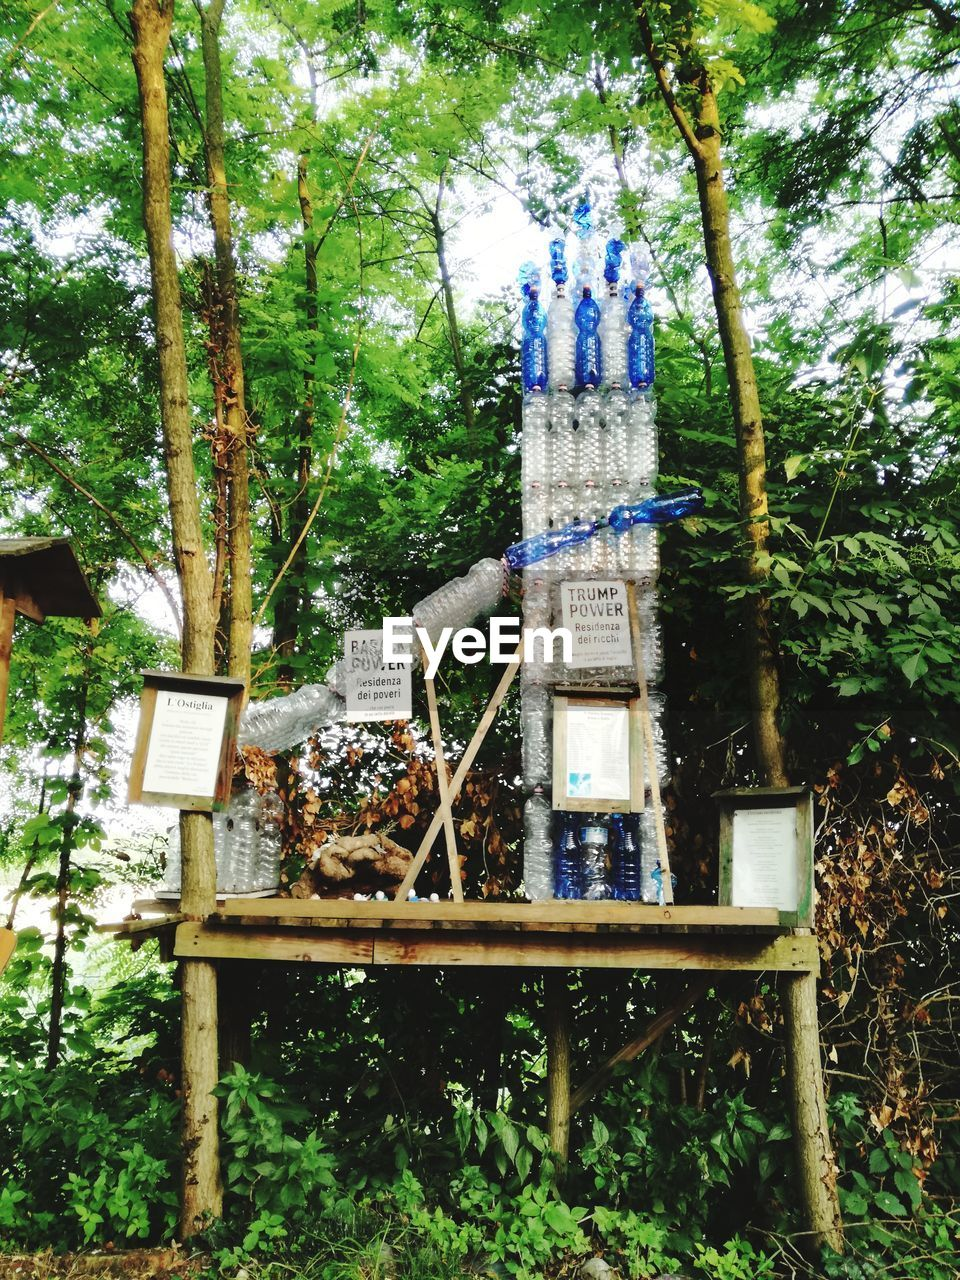 plant, tree, day, nature, growth, no people, outdoors, forest, architecture, green color, land, communication, built structure, park, wood - material, art and craft, religion, sign, spirituality, text